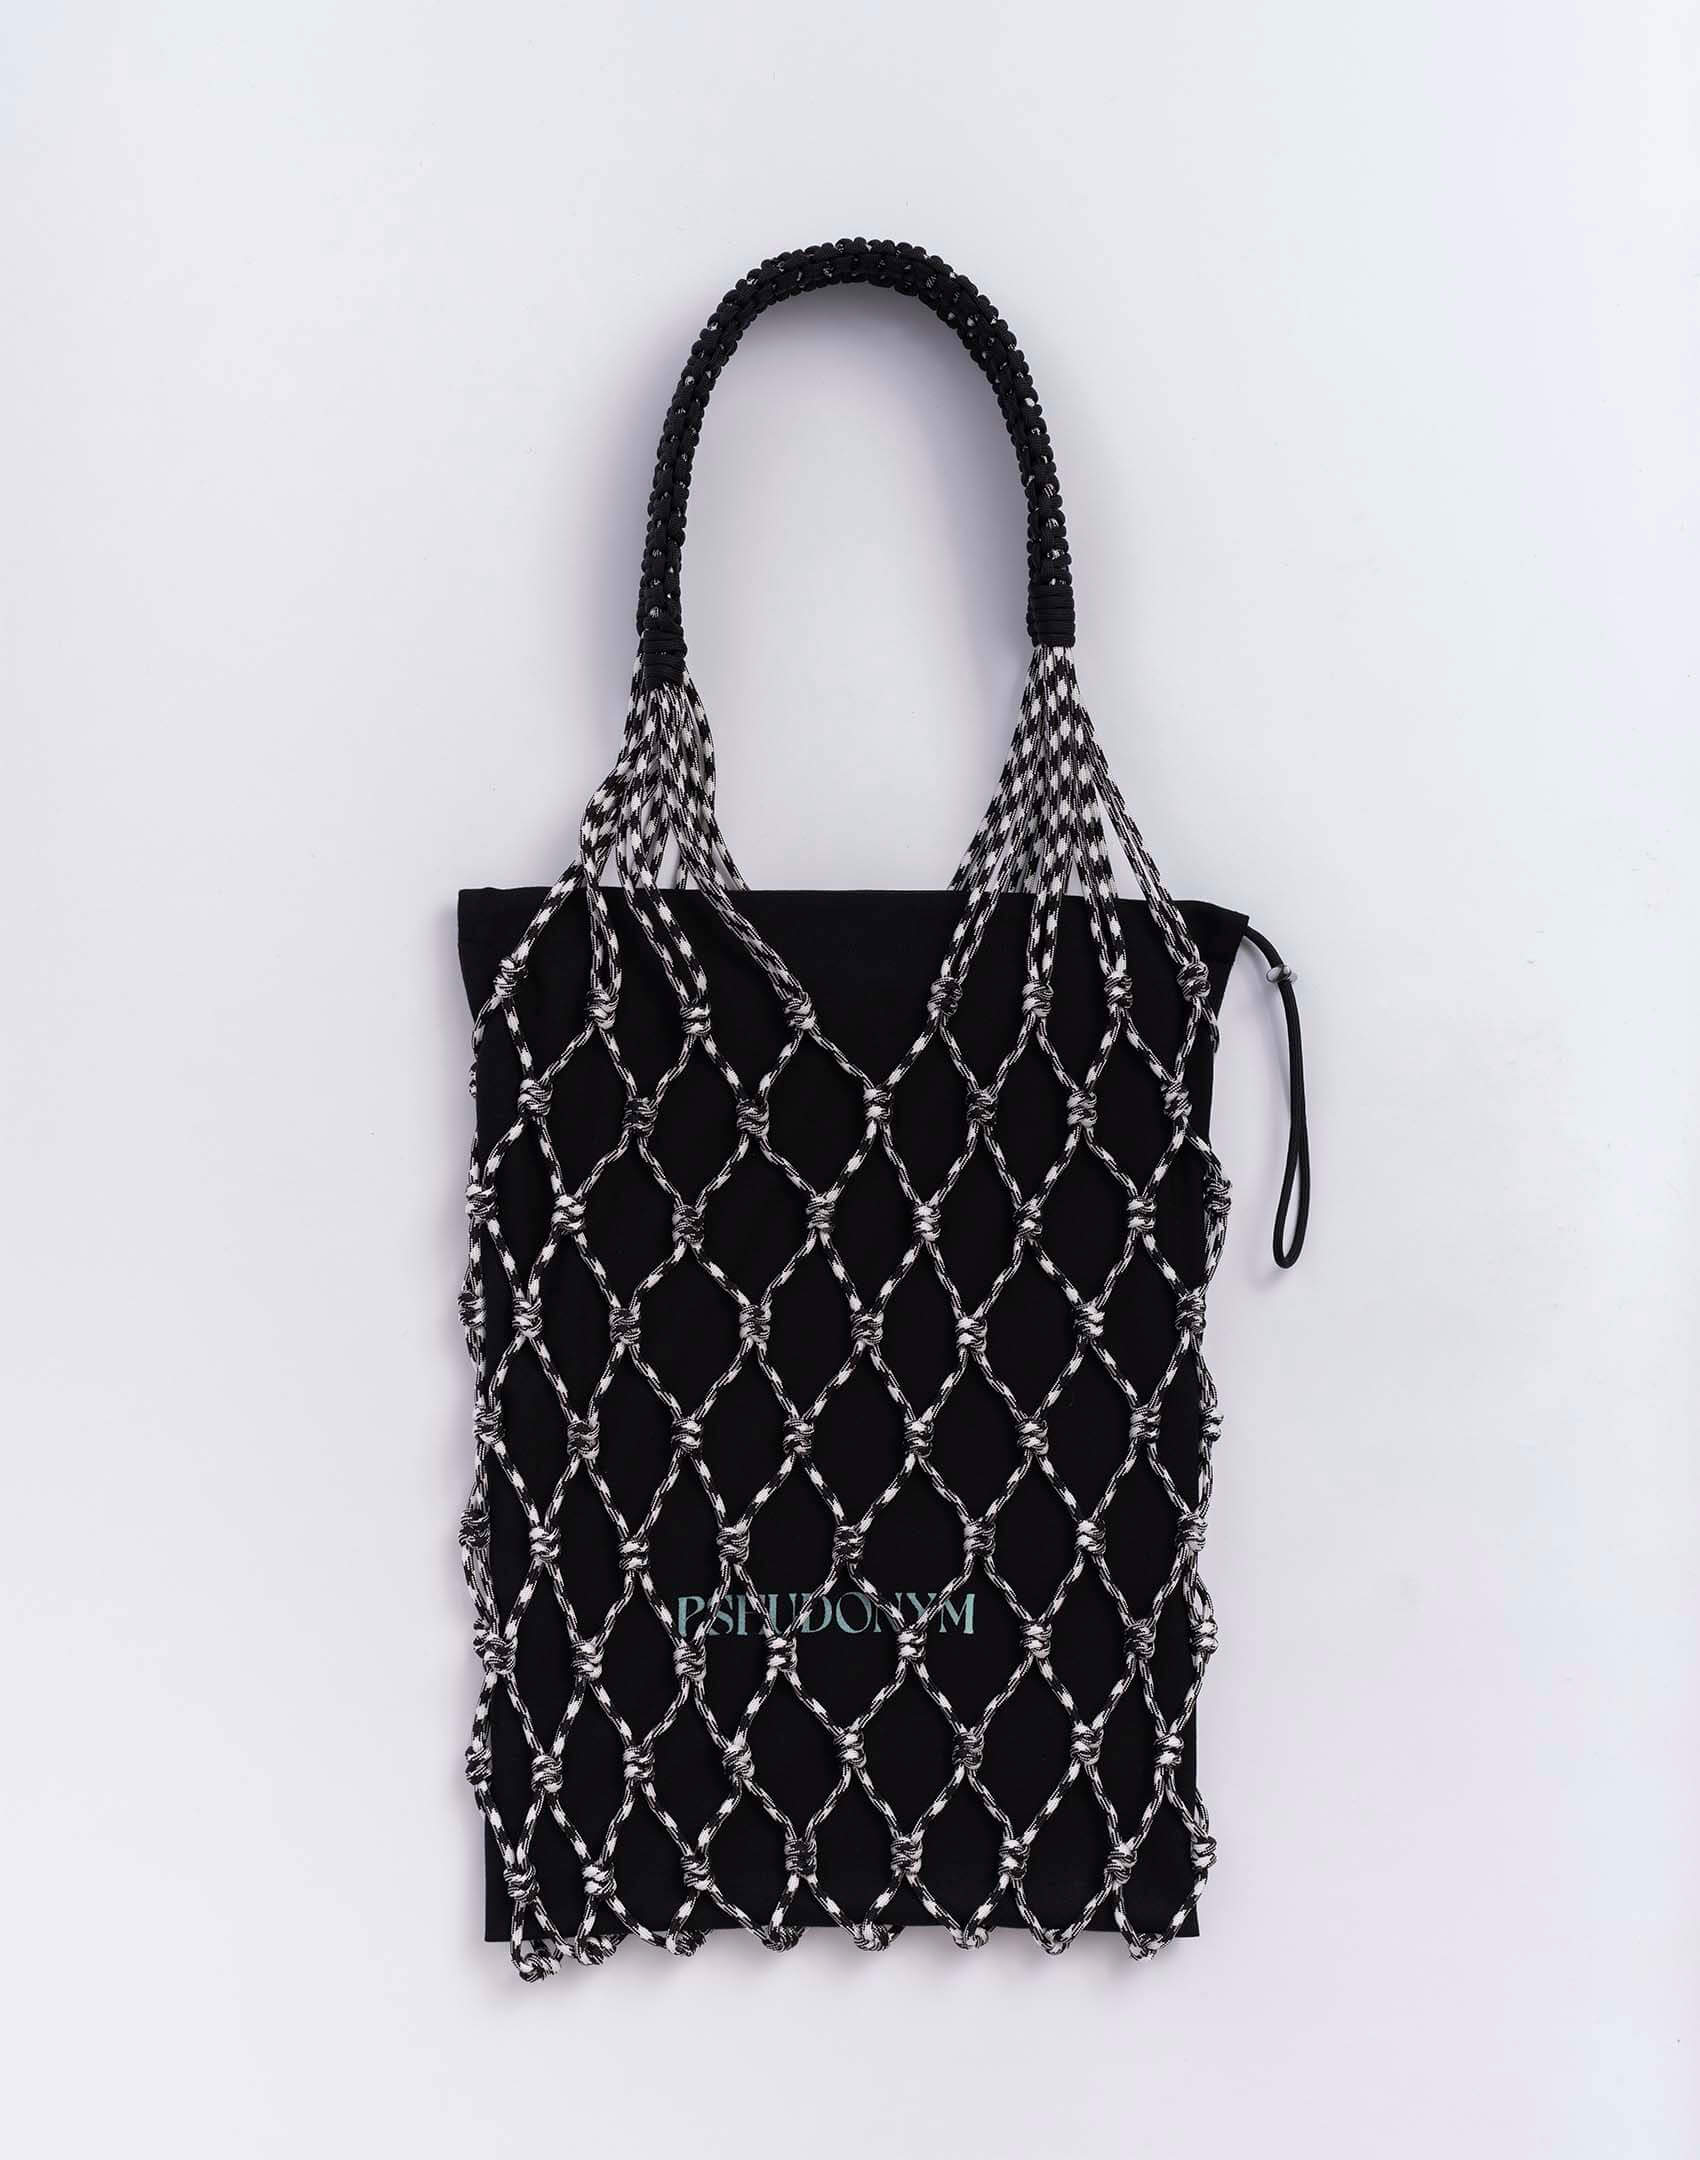 P.S. Field Bag 05 (Cookies 'n Cream), black and white houndstooth colorway.